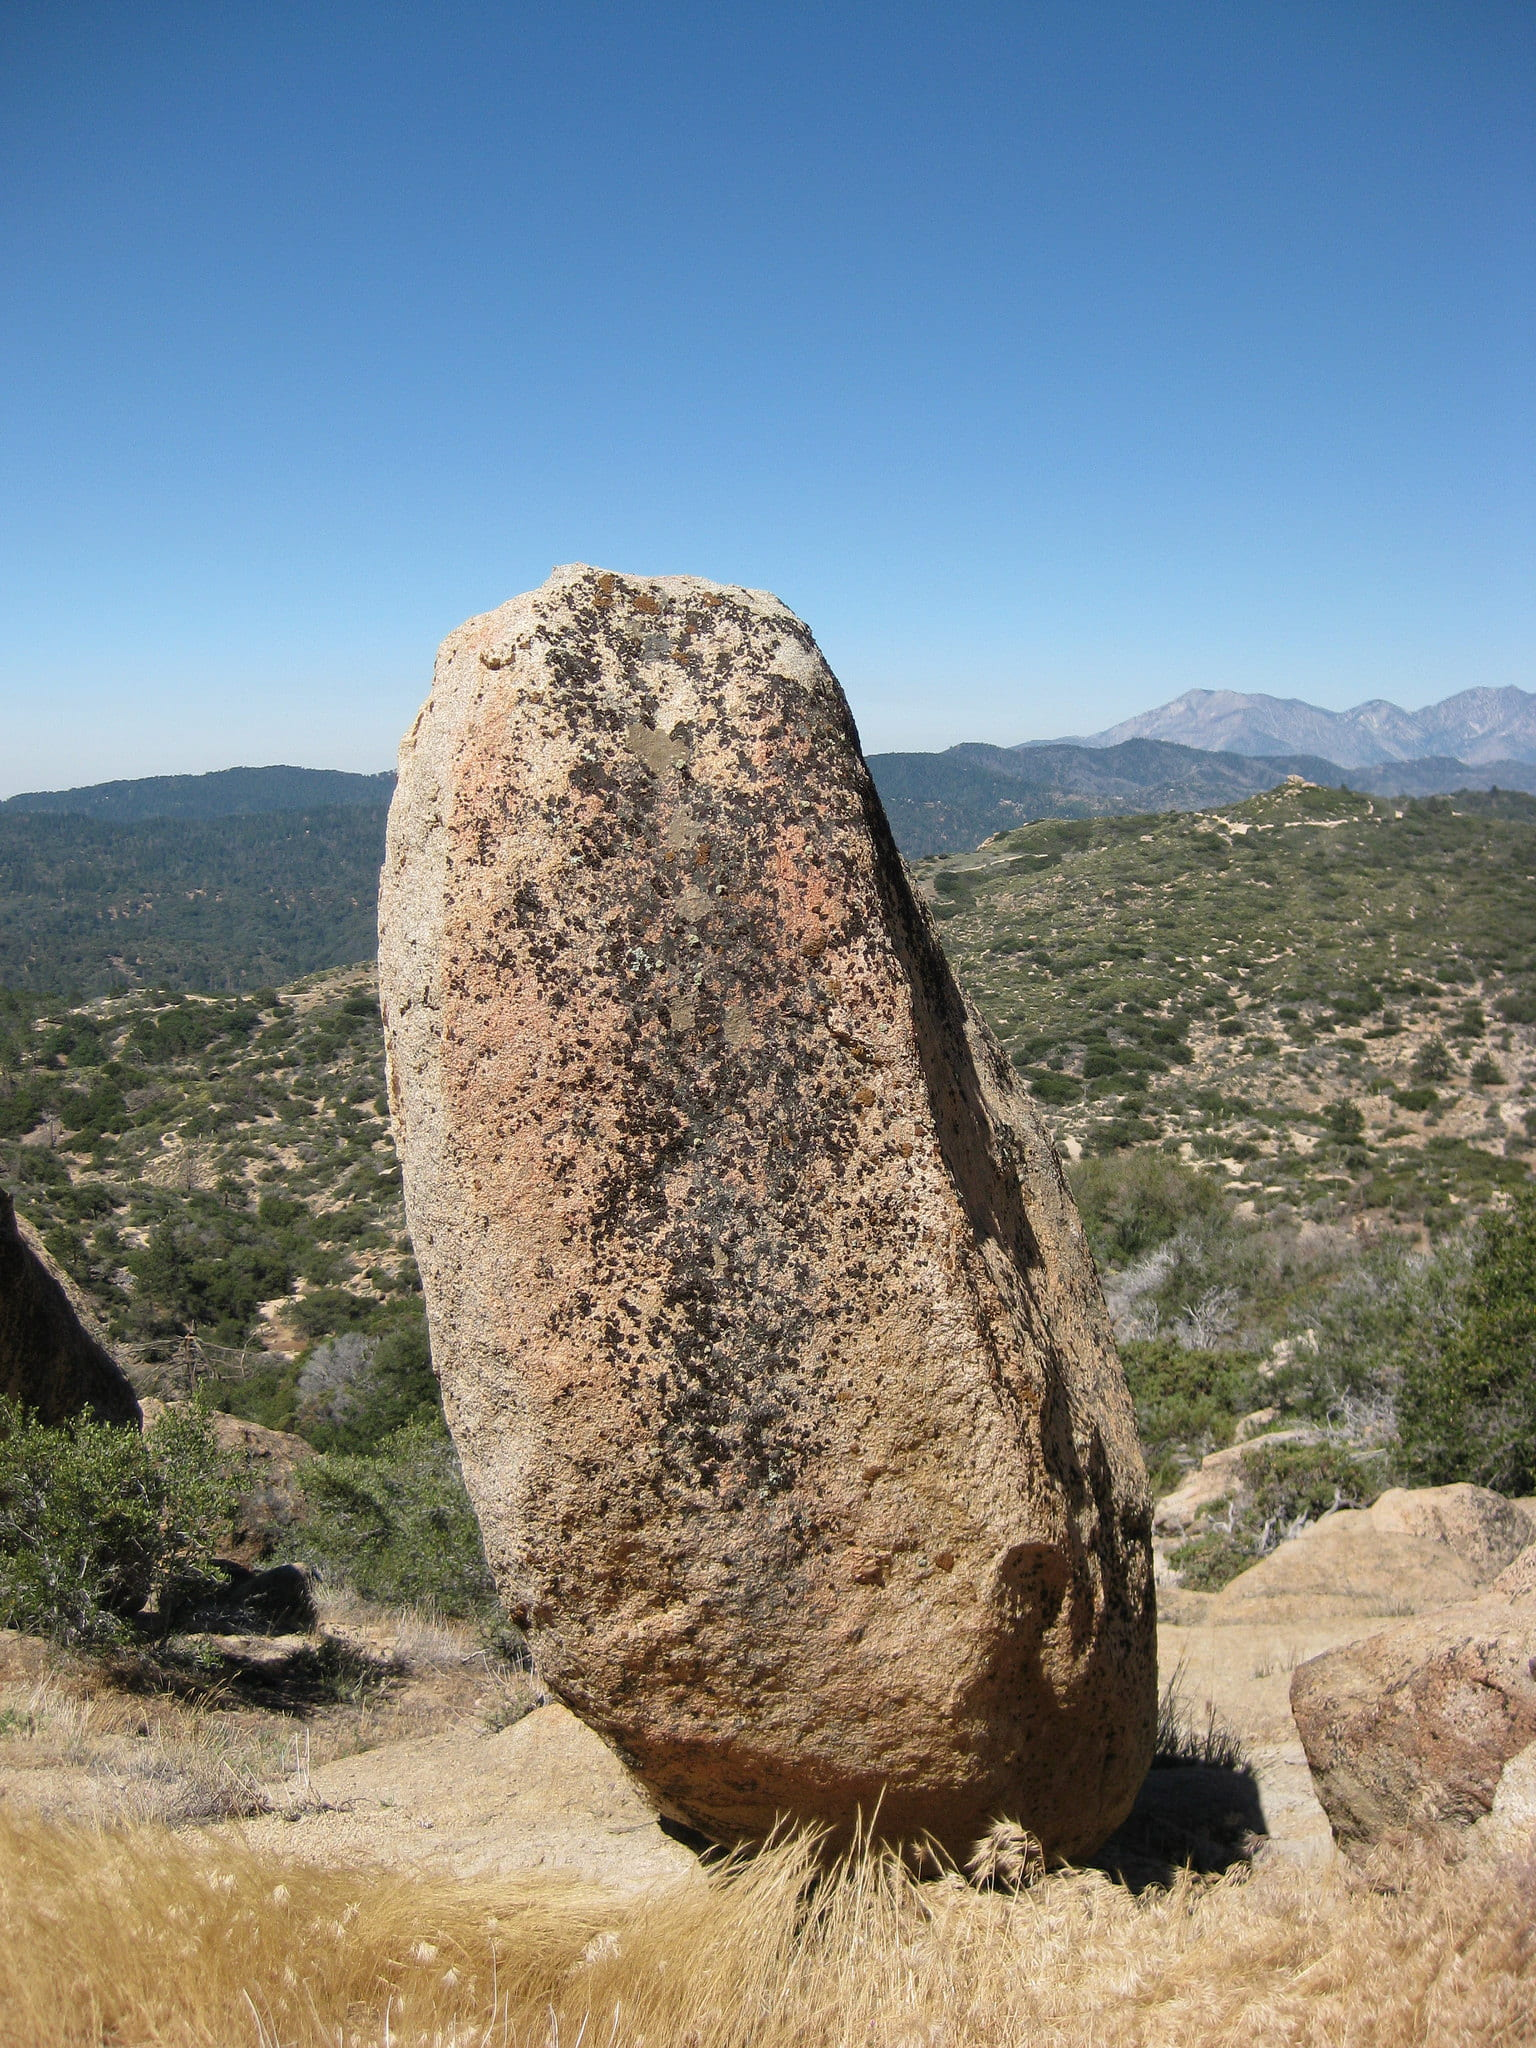 Precariously balanced rocks provide clues for unearthing ...